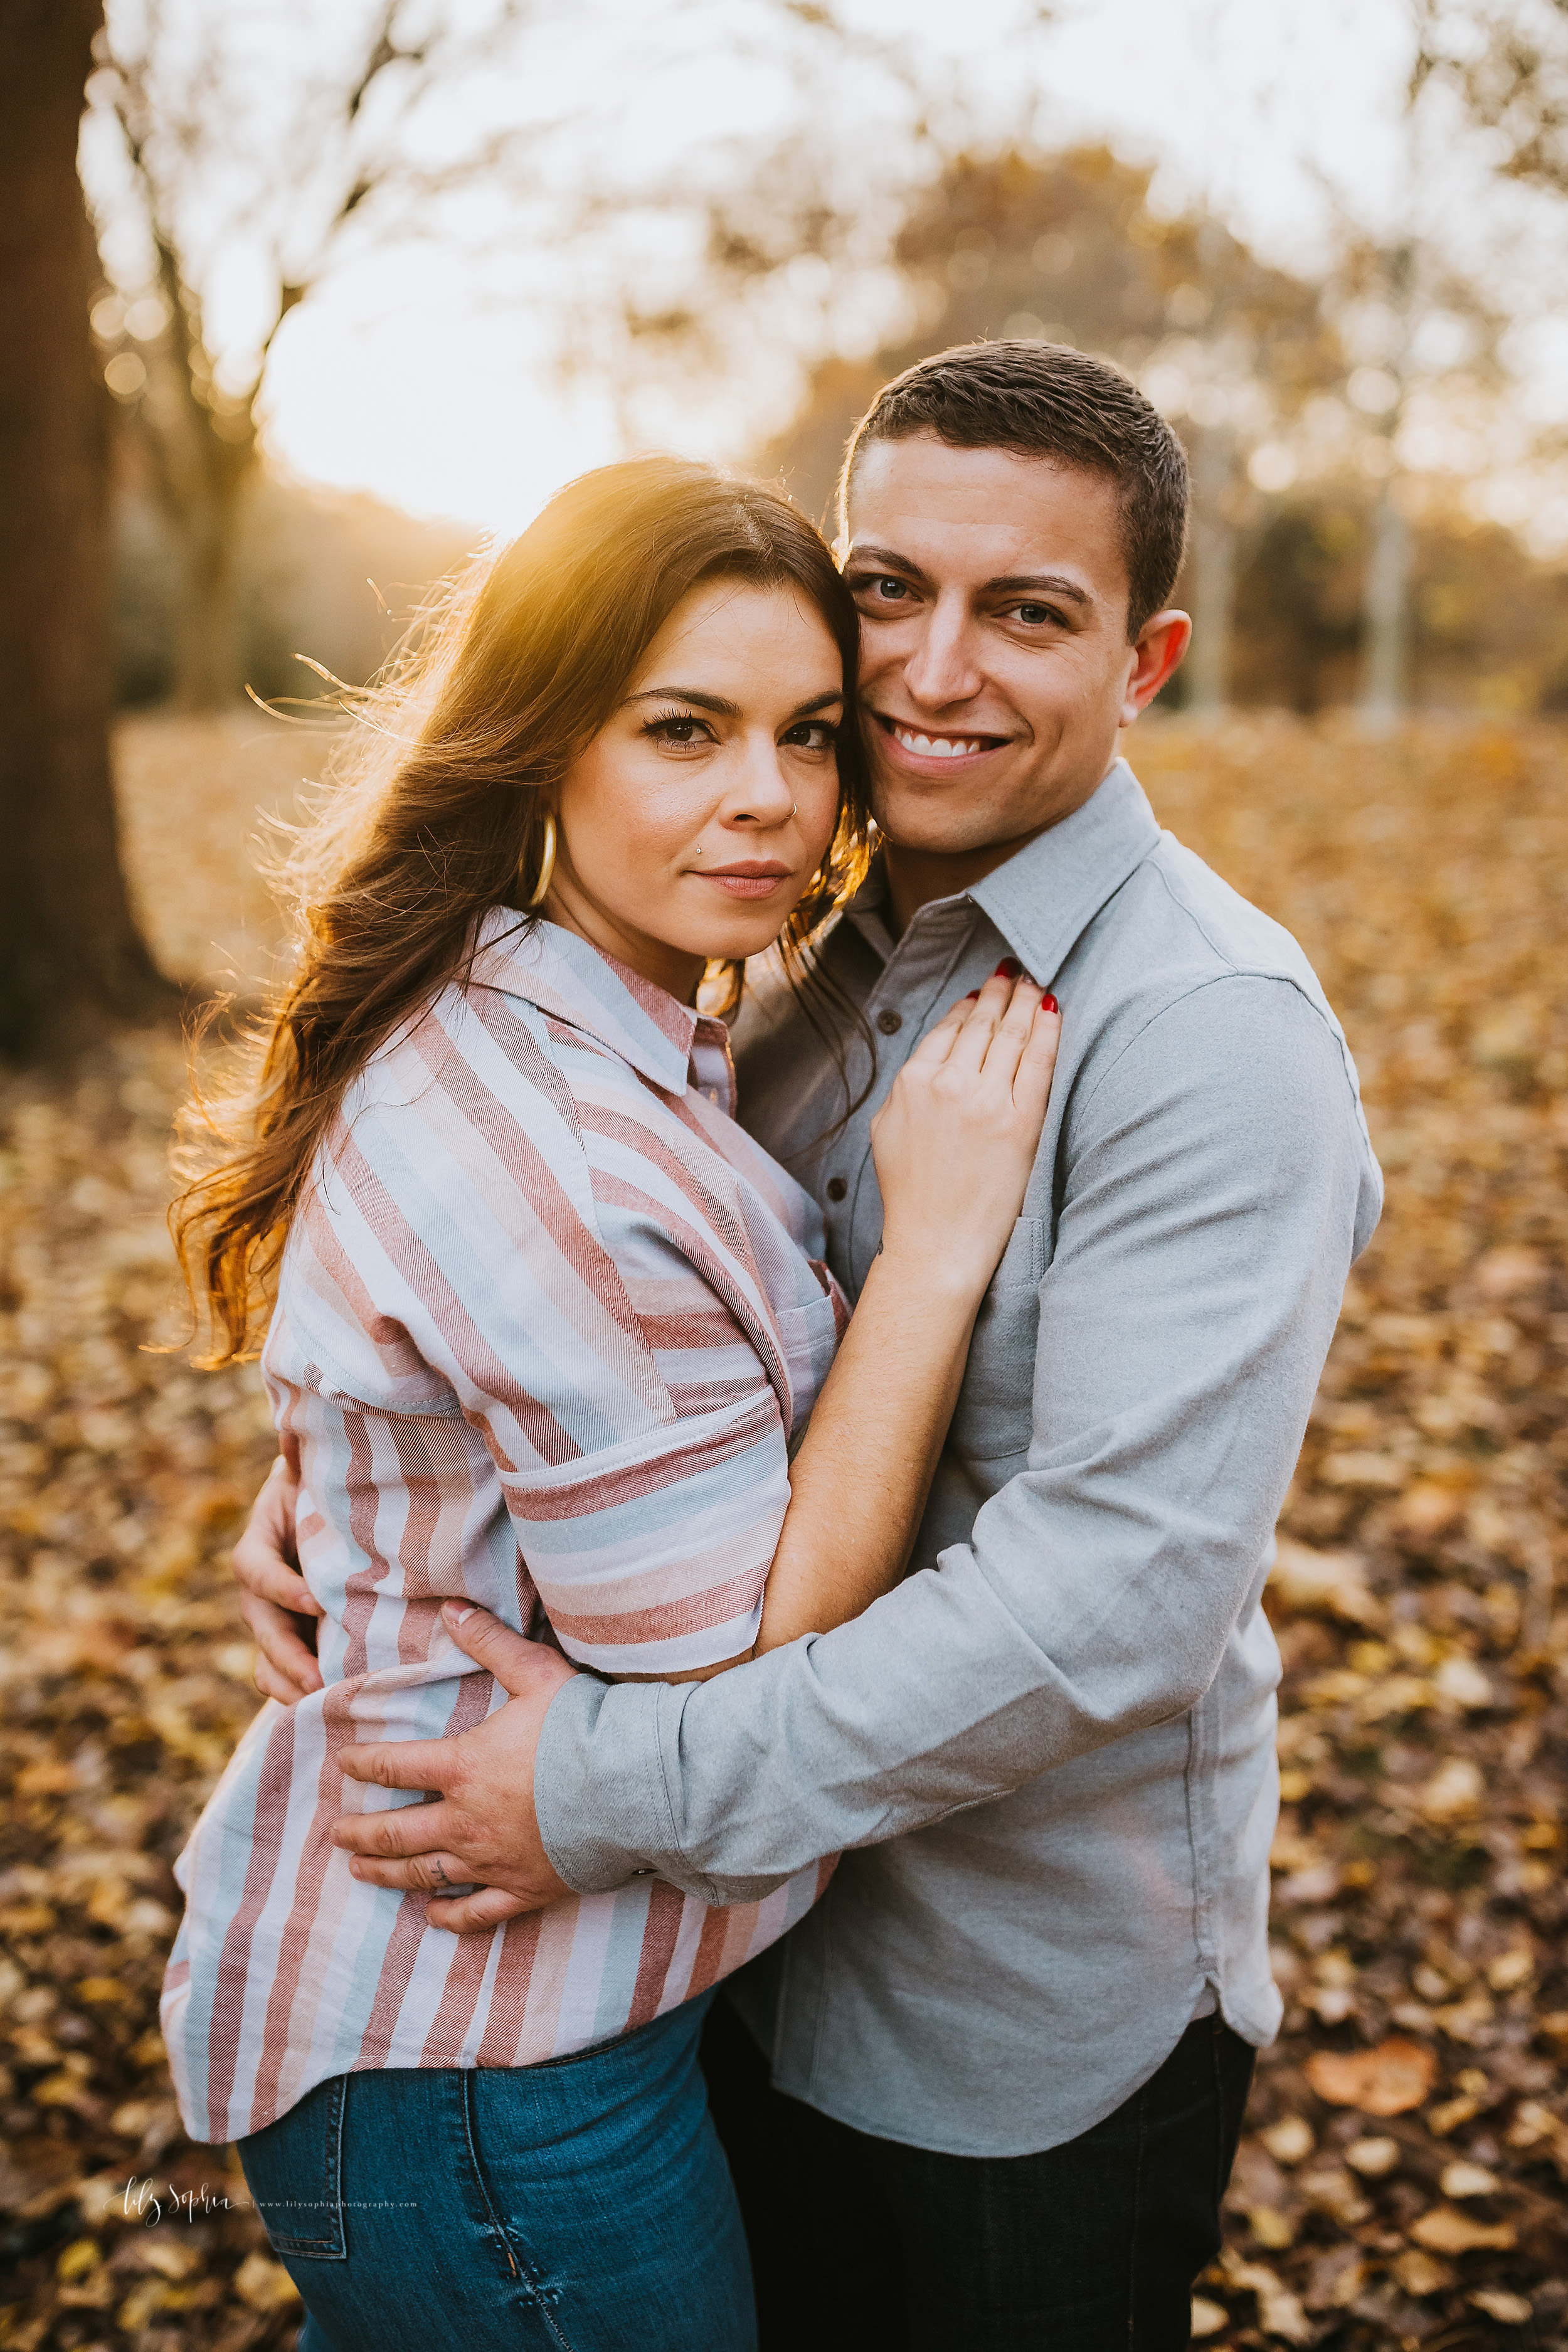 Photograph of an Atlanta couple in a park in Atlanta as the sun sets in autumn.  The woman and man are facing one another.  The woman has her right hand on the man's chest.  The man is smiling.